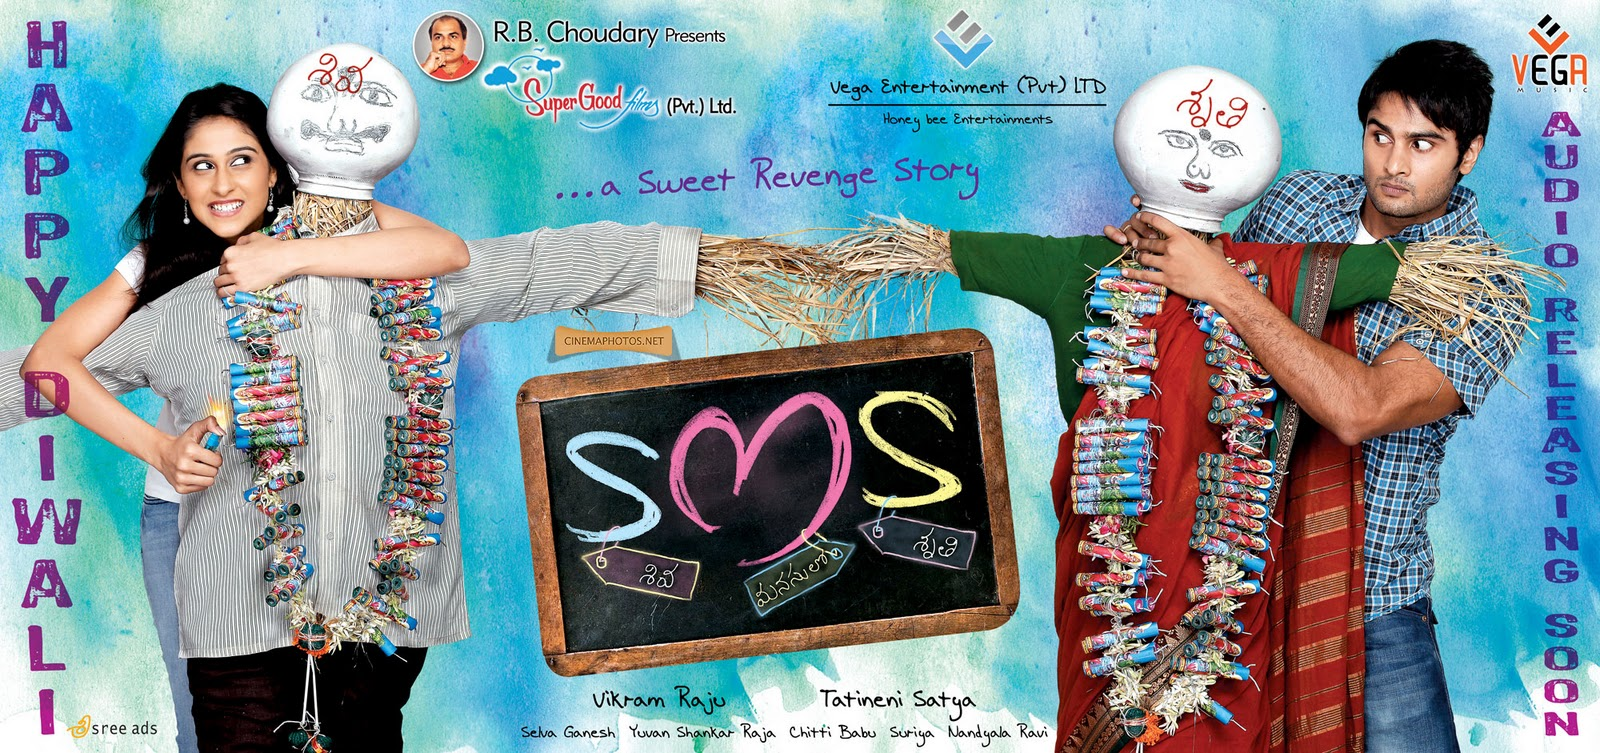 A2zspice: sms (2012) telugu movie mp3 songs free download.